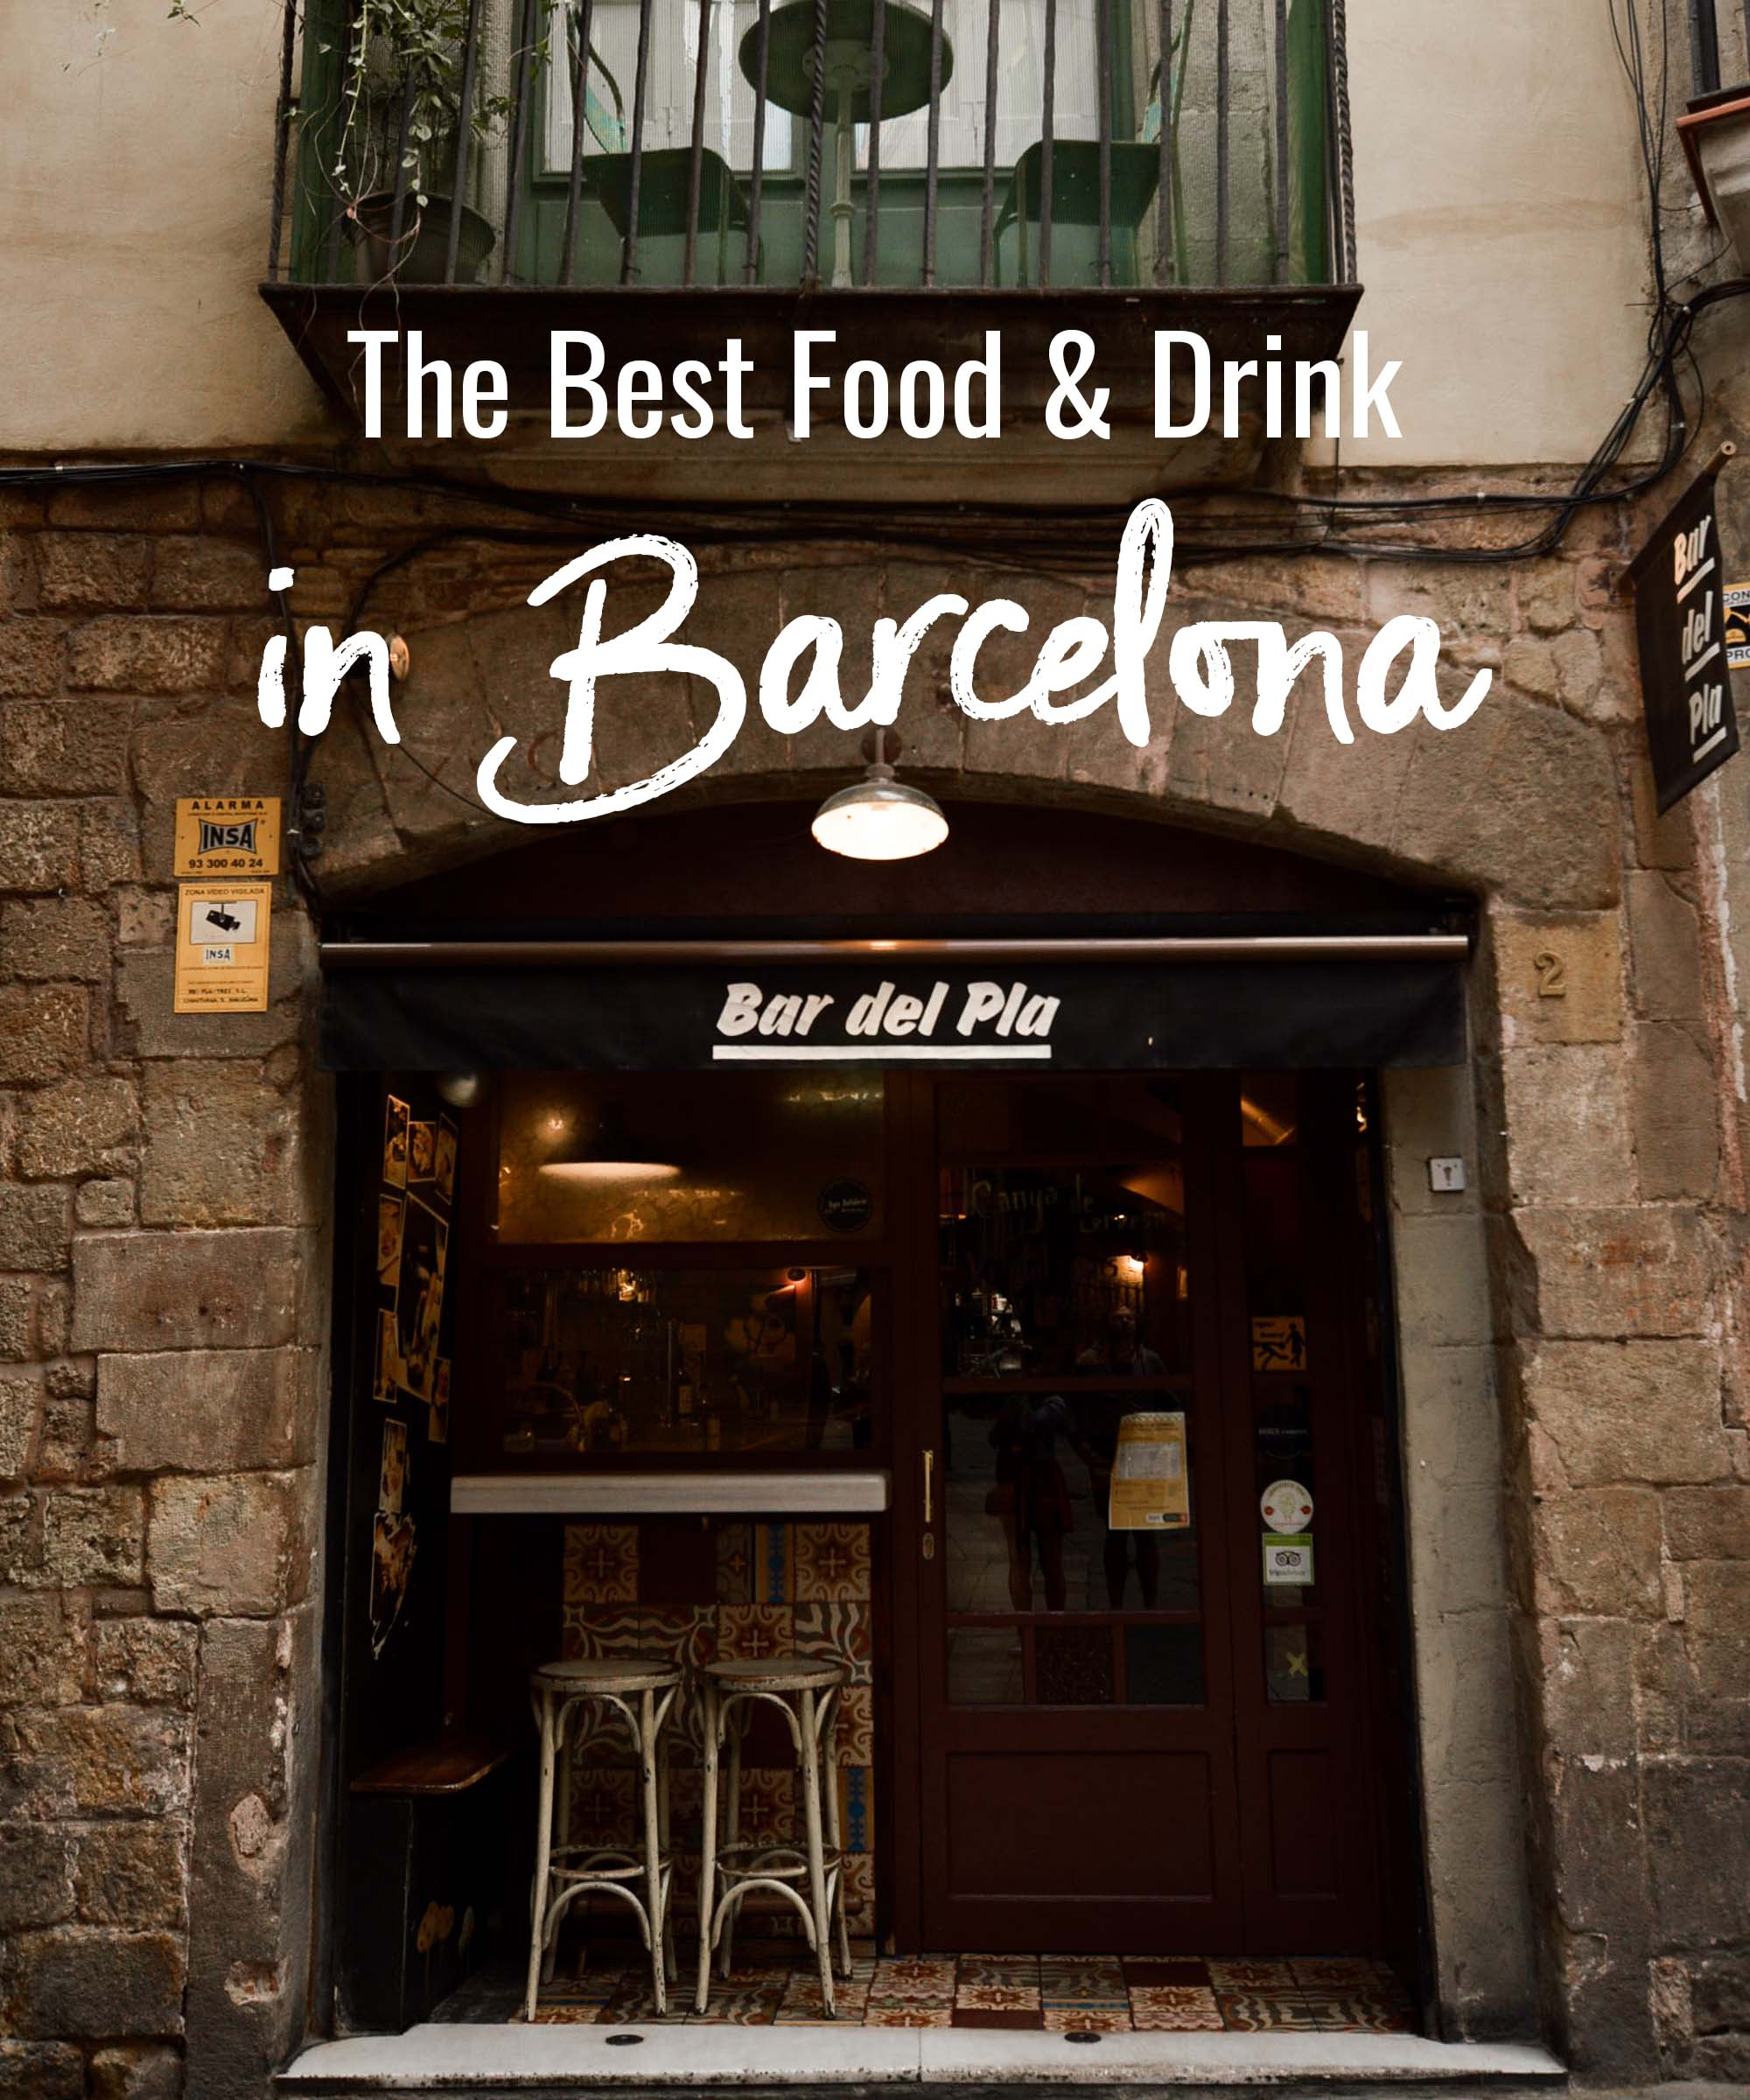 The best food and drink in Barcelona